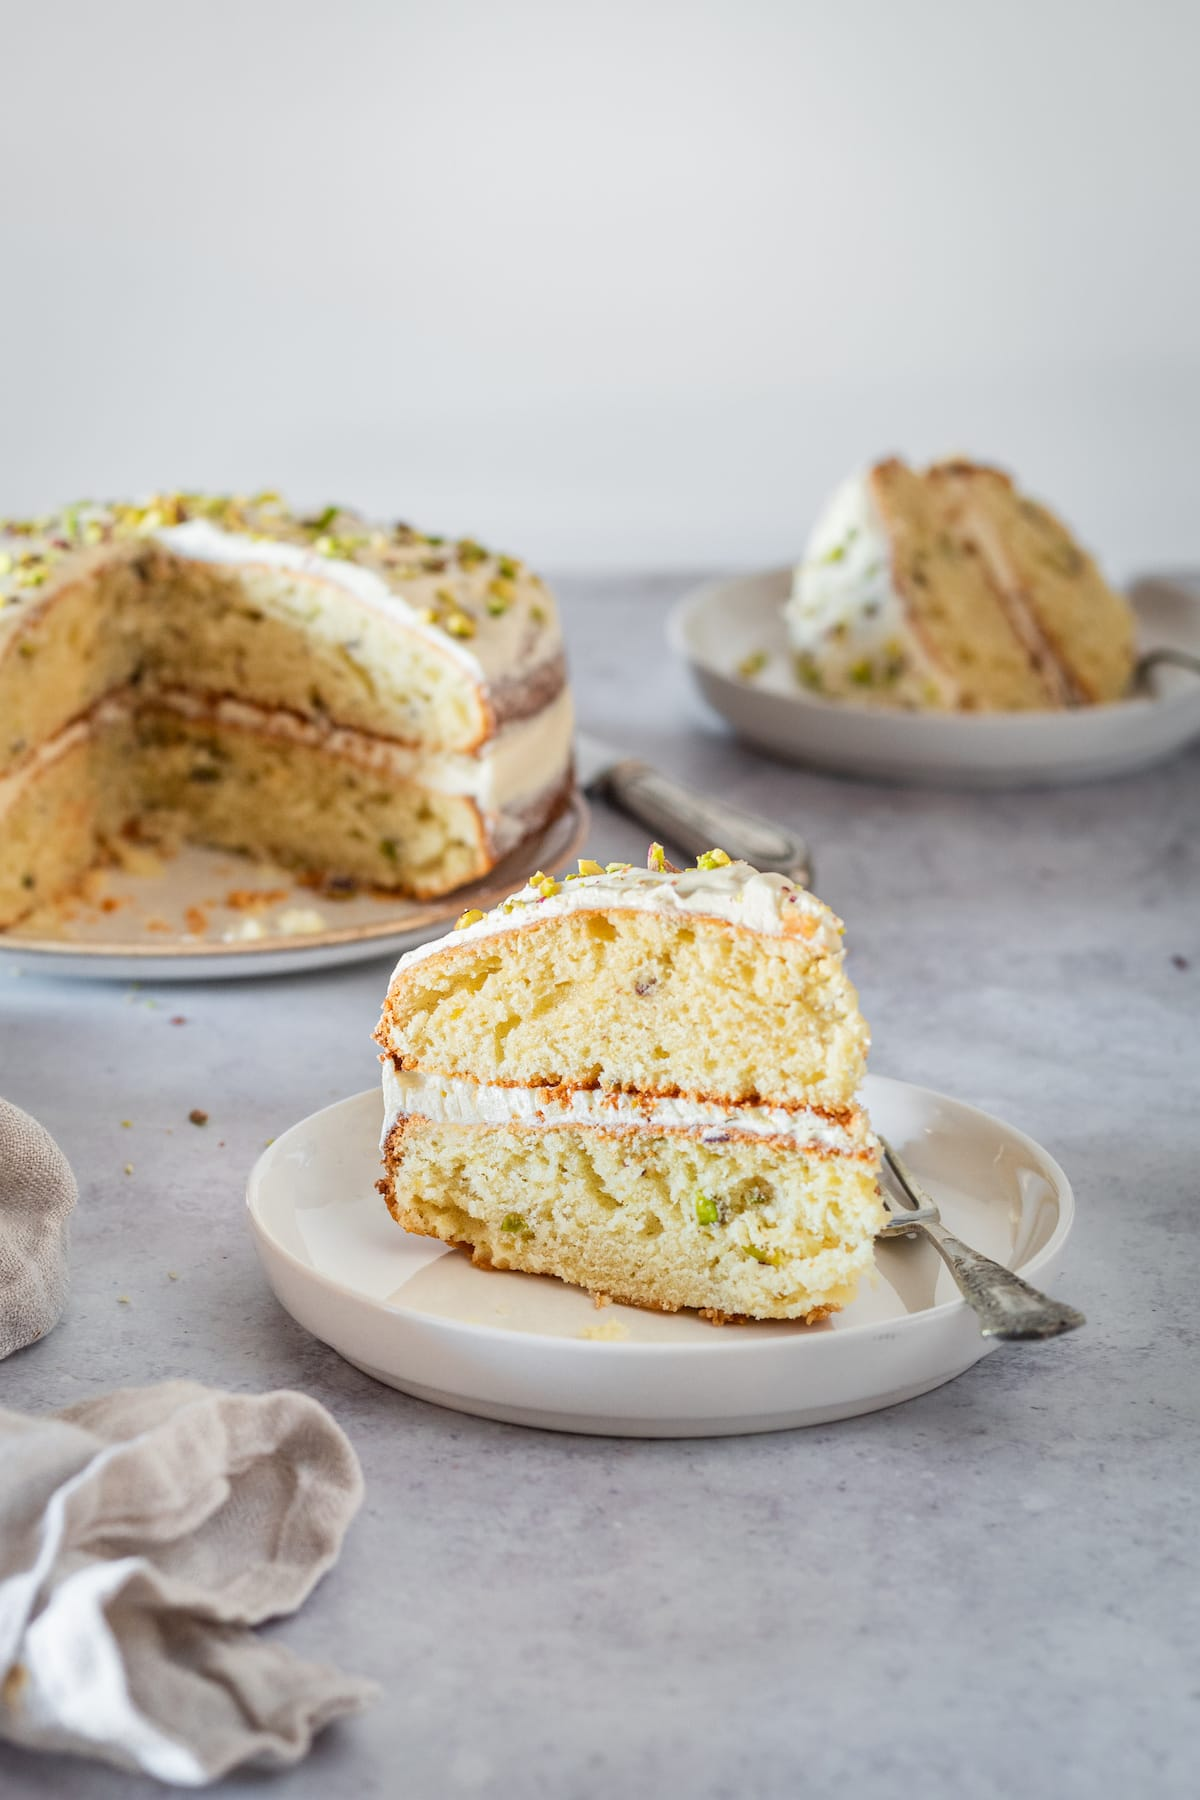 Two plated slices of Pistachio Cake with remaining cake in background